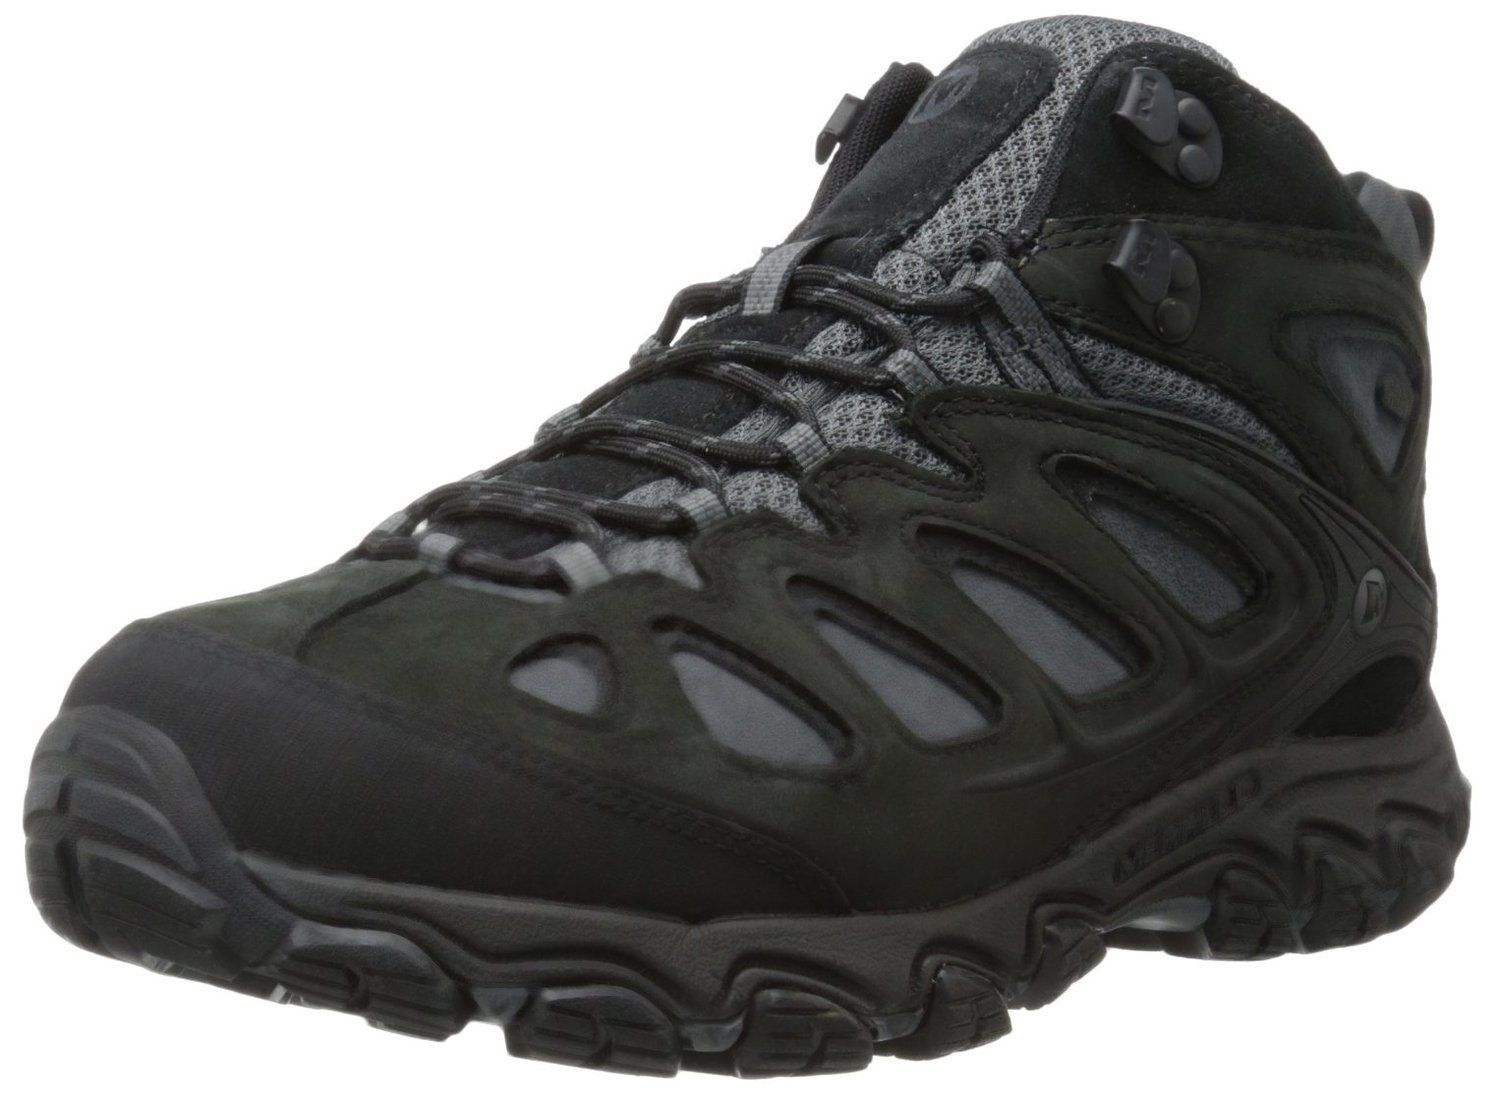 34be55047e7b7 Merrell Men's Pulsate Mid Waterproof Hiking Boot -- Visit the image ...